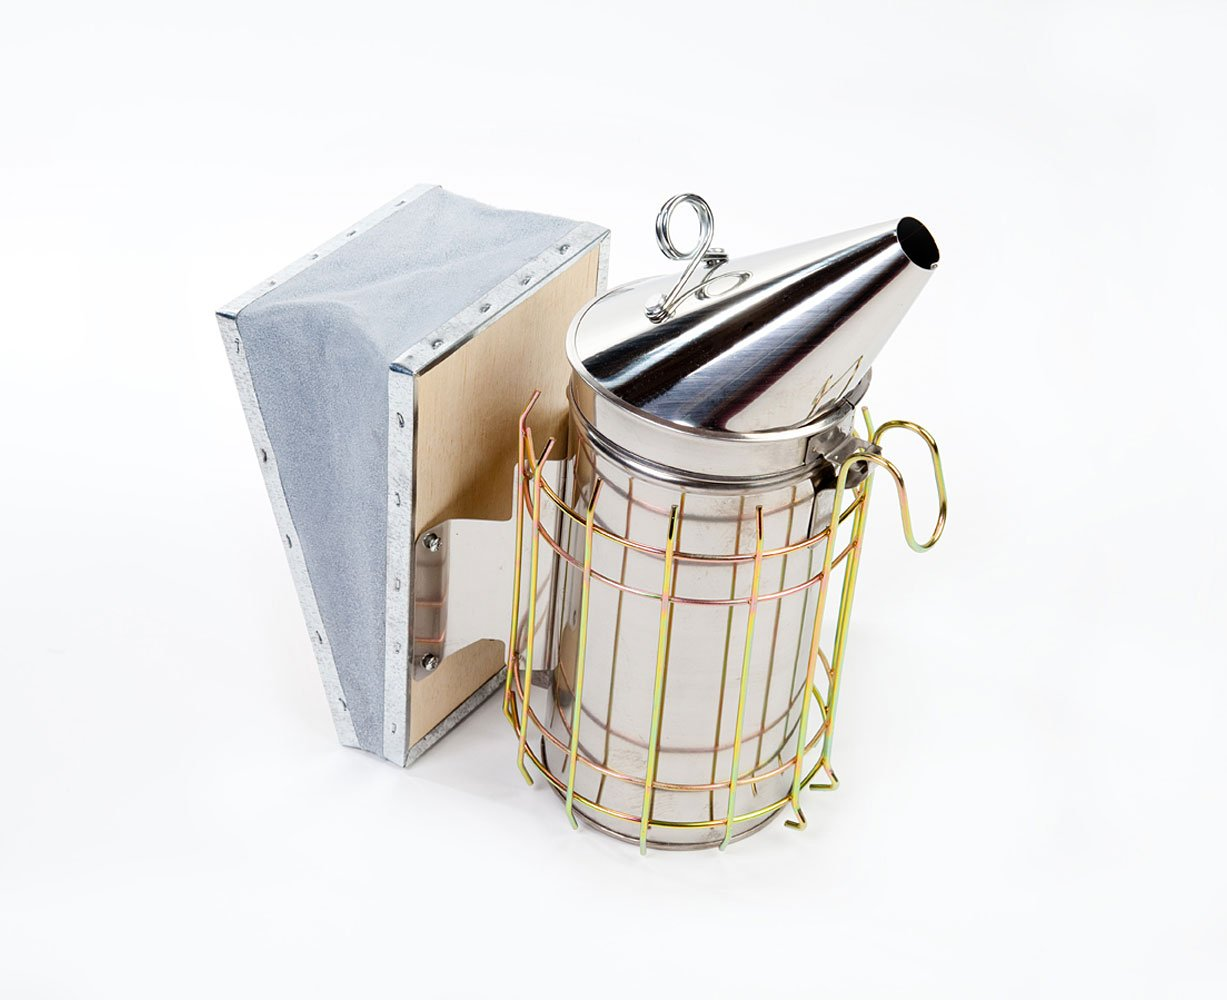 Gloves and Tool Large//Large Wax Suit Smoker Easipet Starter Kit National Bee Hive in Cedar with Frames